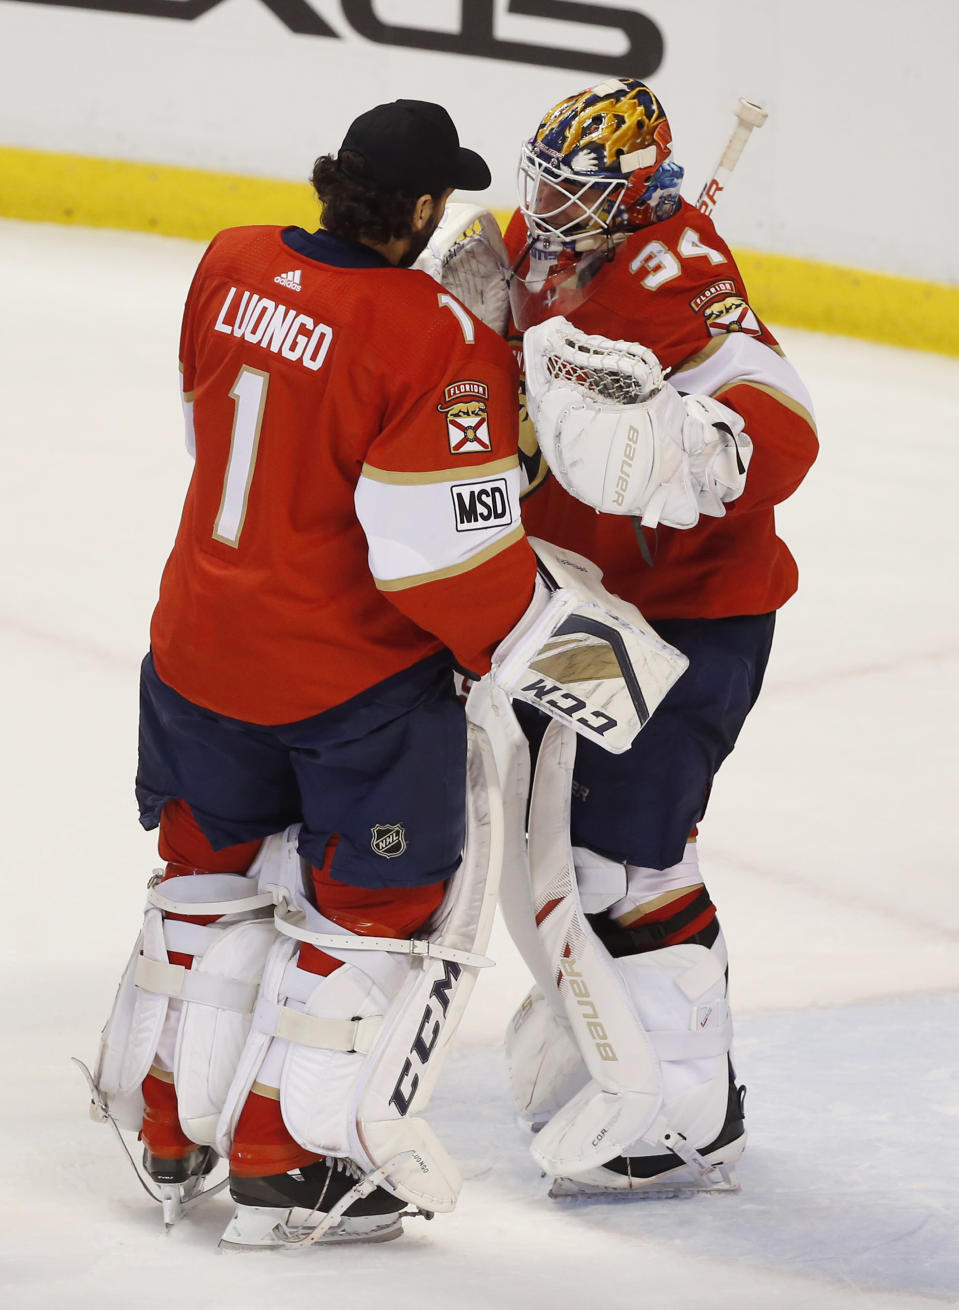 Florida Panthers goaltender Roberto Luongo (1) congratulates goaltender James Reimer (34) after they defeated the Buffalo Sabres in an NHL hockey game, Friday, March 2, 2018, in Sunrise, Fla. (AP Photo/Wilfredo Lee)